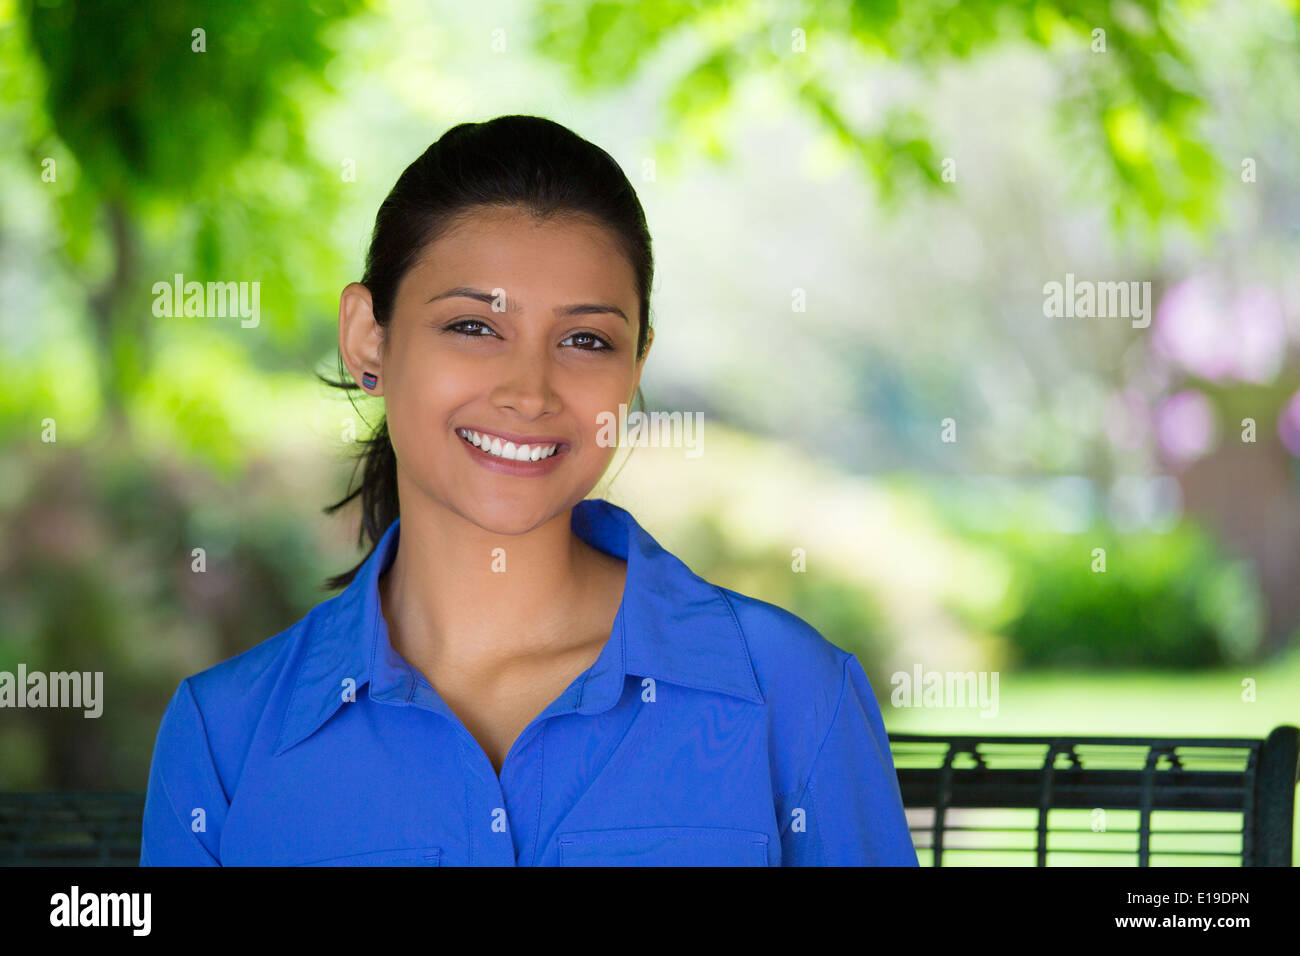 Smiling woman in park - Stock Image